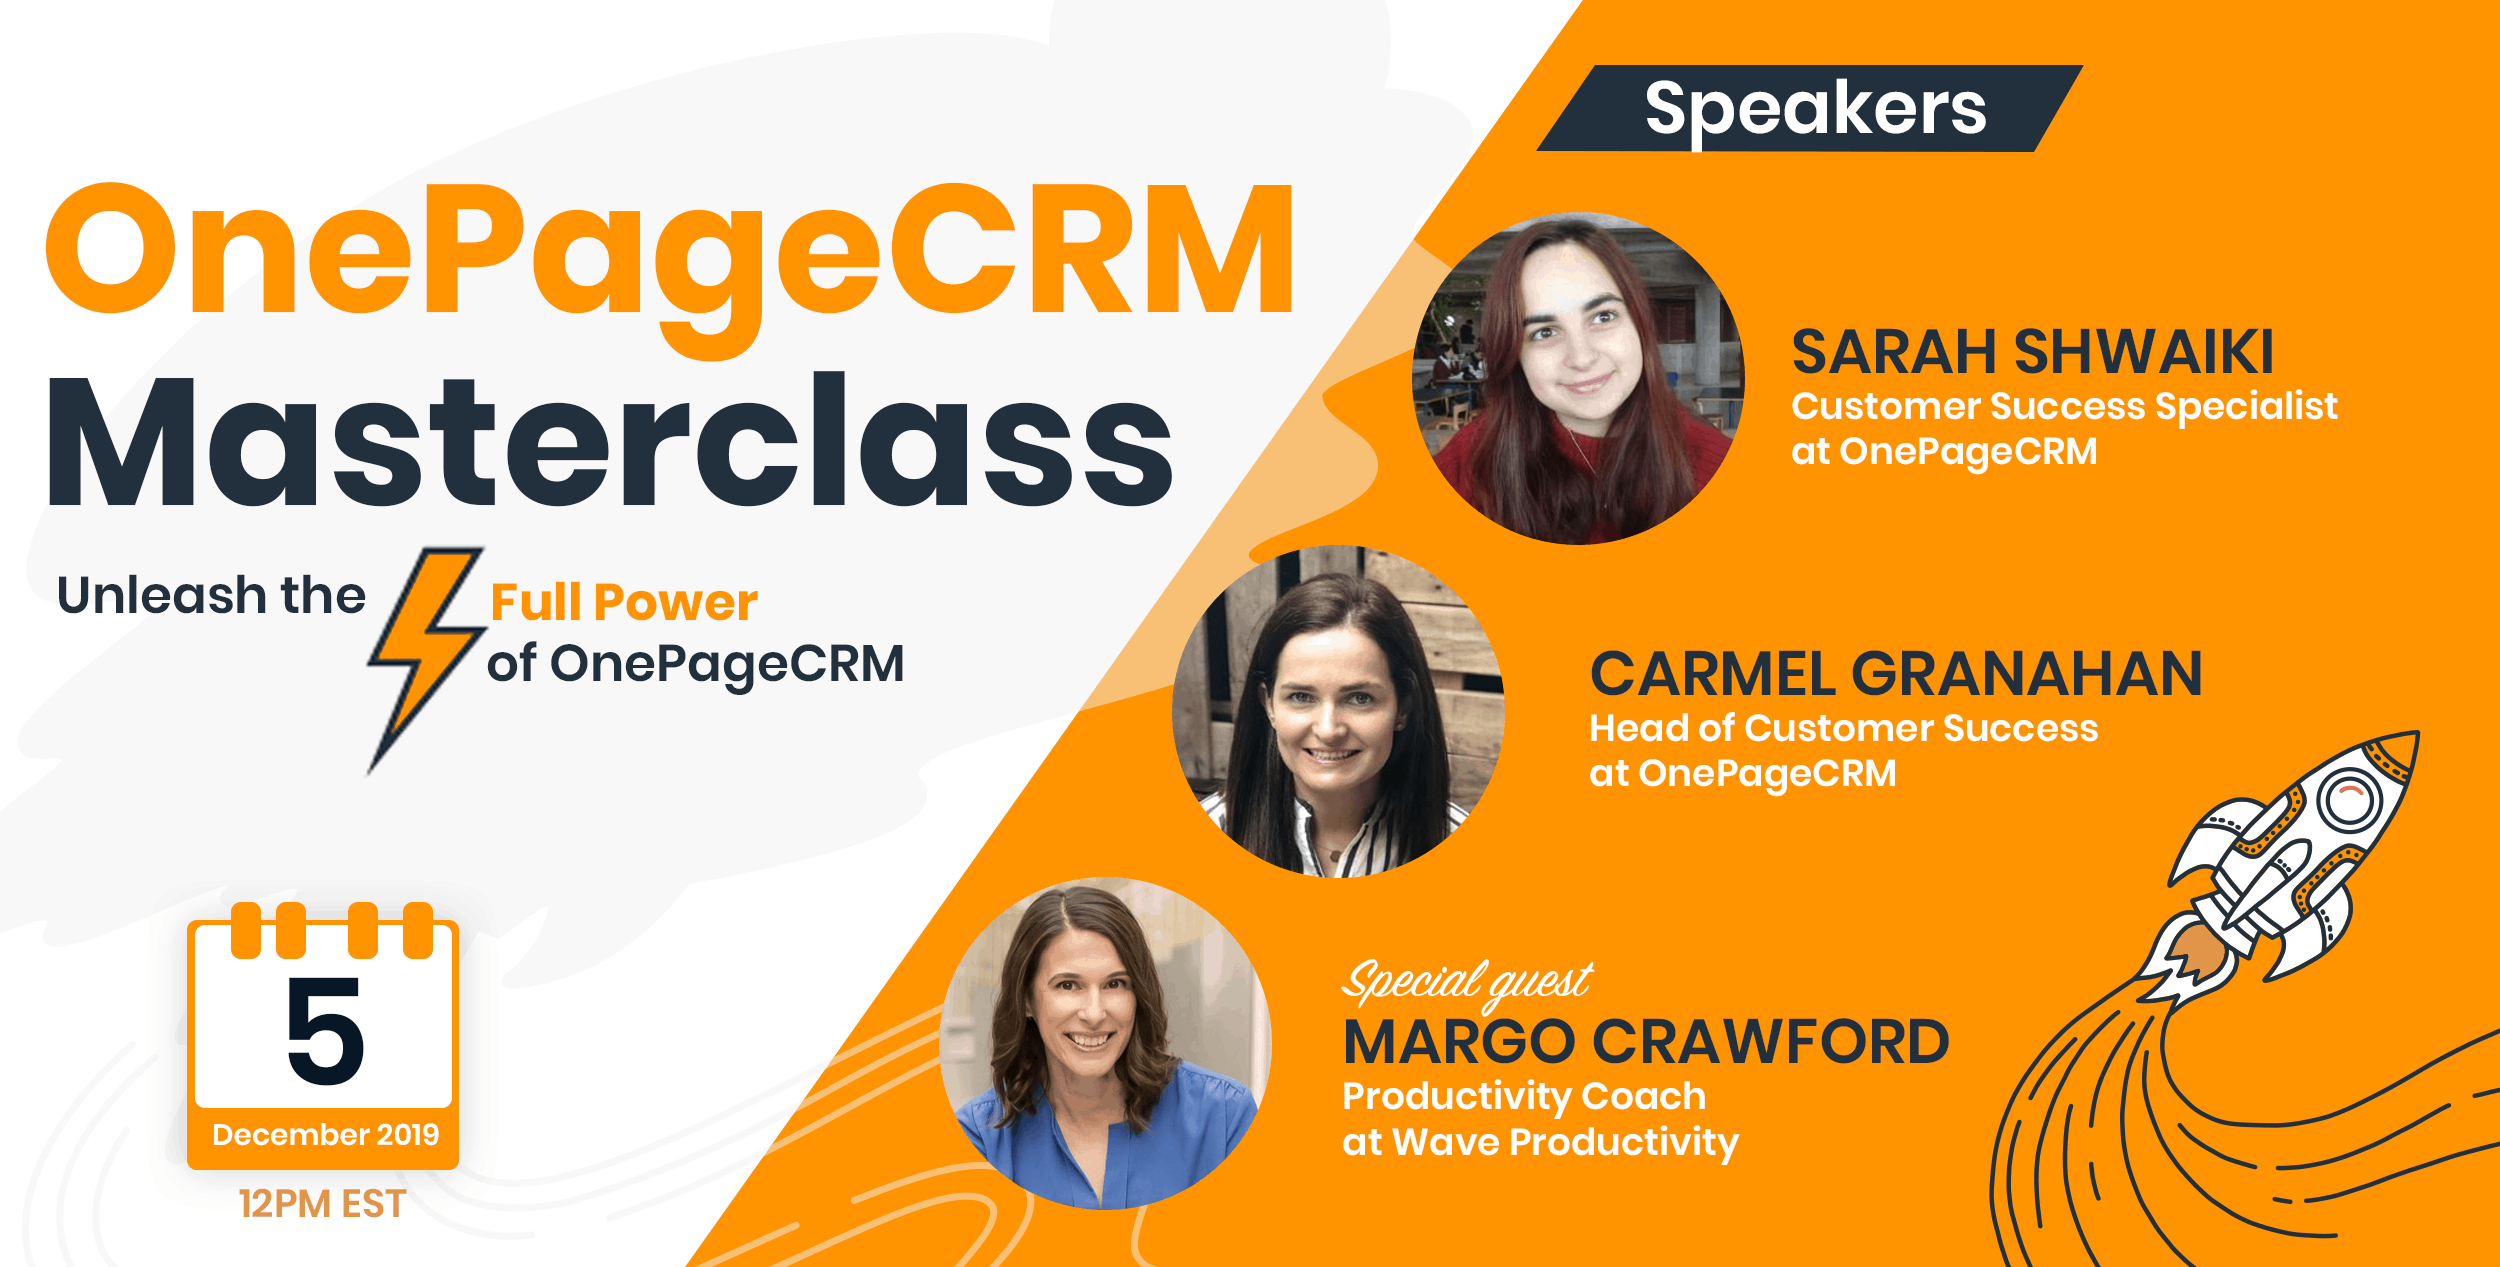 OnePageCRM Masterclass | Unleash the full power of OnePageCRM!